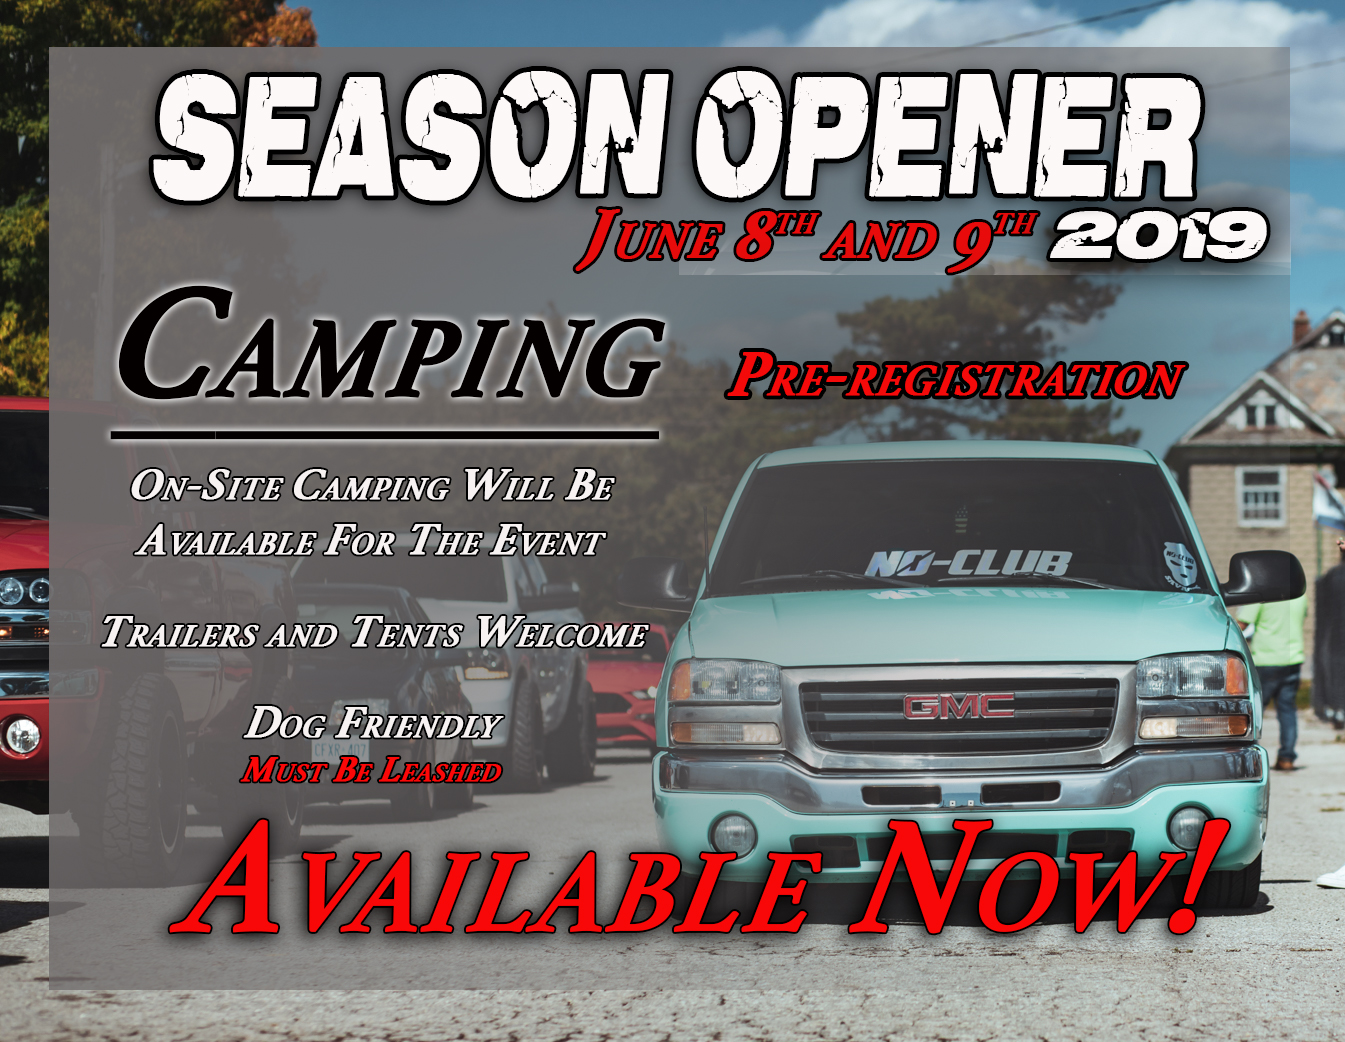 Season Opener 2019 Camping Available Now.Click Link Below To Reserve Your Spot! - Move-in will be on Friday from 12:00pm until 9:00pm; resuming Saturday morningRV Campsite - 30 amp electric & water | $90.00 |RV Campsite - 15 amp electric & water | $80.00 |RV Campsite - No Utilities | $70.00 |Tent Site - No Utilities | $ 60.00 |Prices are based on a 2 Night Stay, there are no 1 Night optionsNo tents on RV sitesHST included in price.Camping FAQ'shttps://www.jukasamotorspeedway.com/visitor-info/camping/